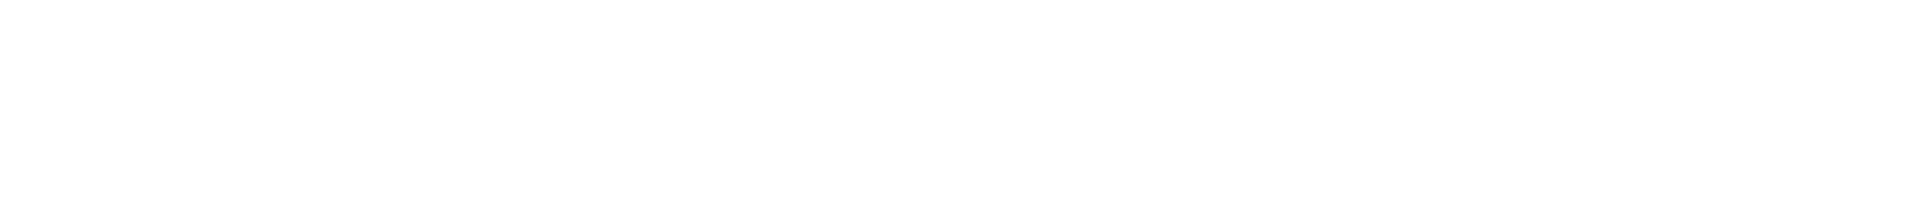 i-SPEED 716 logo.